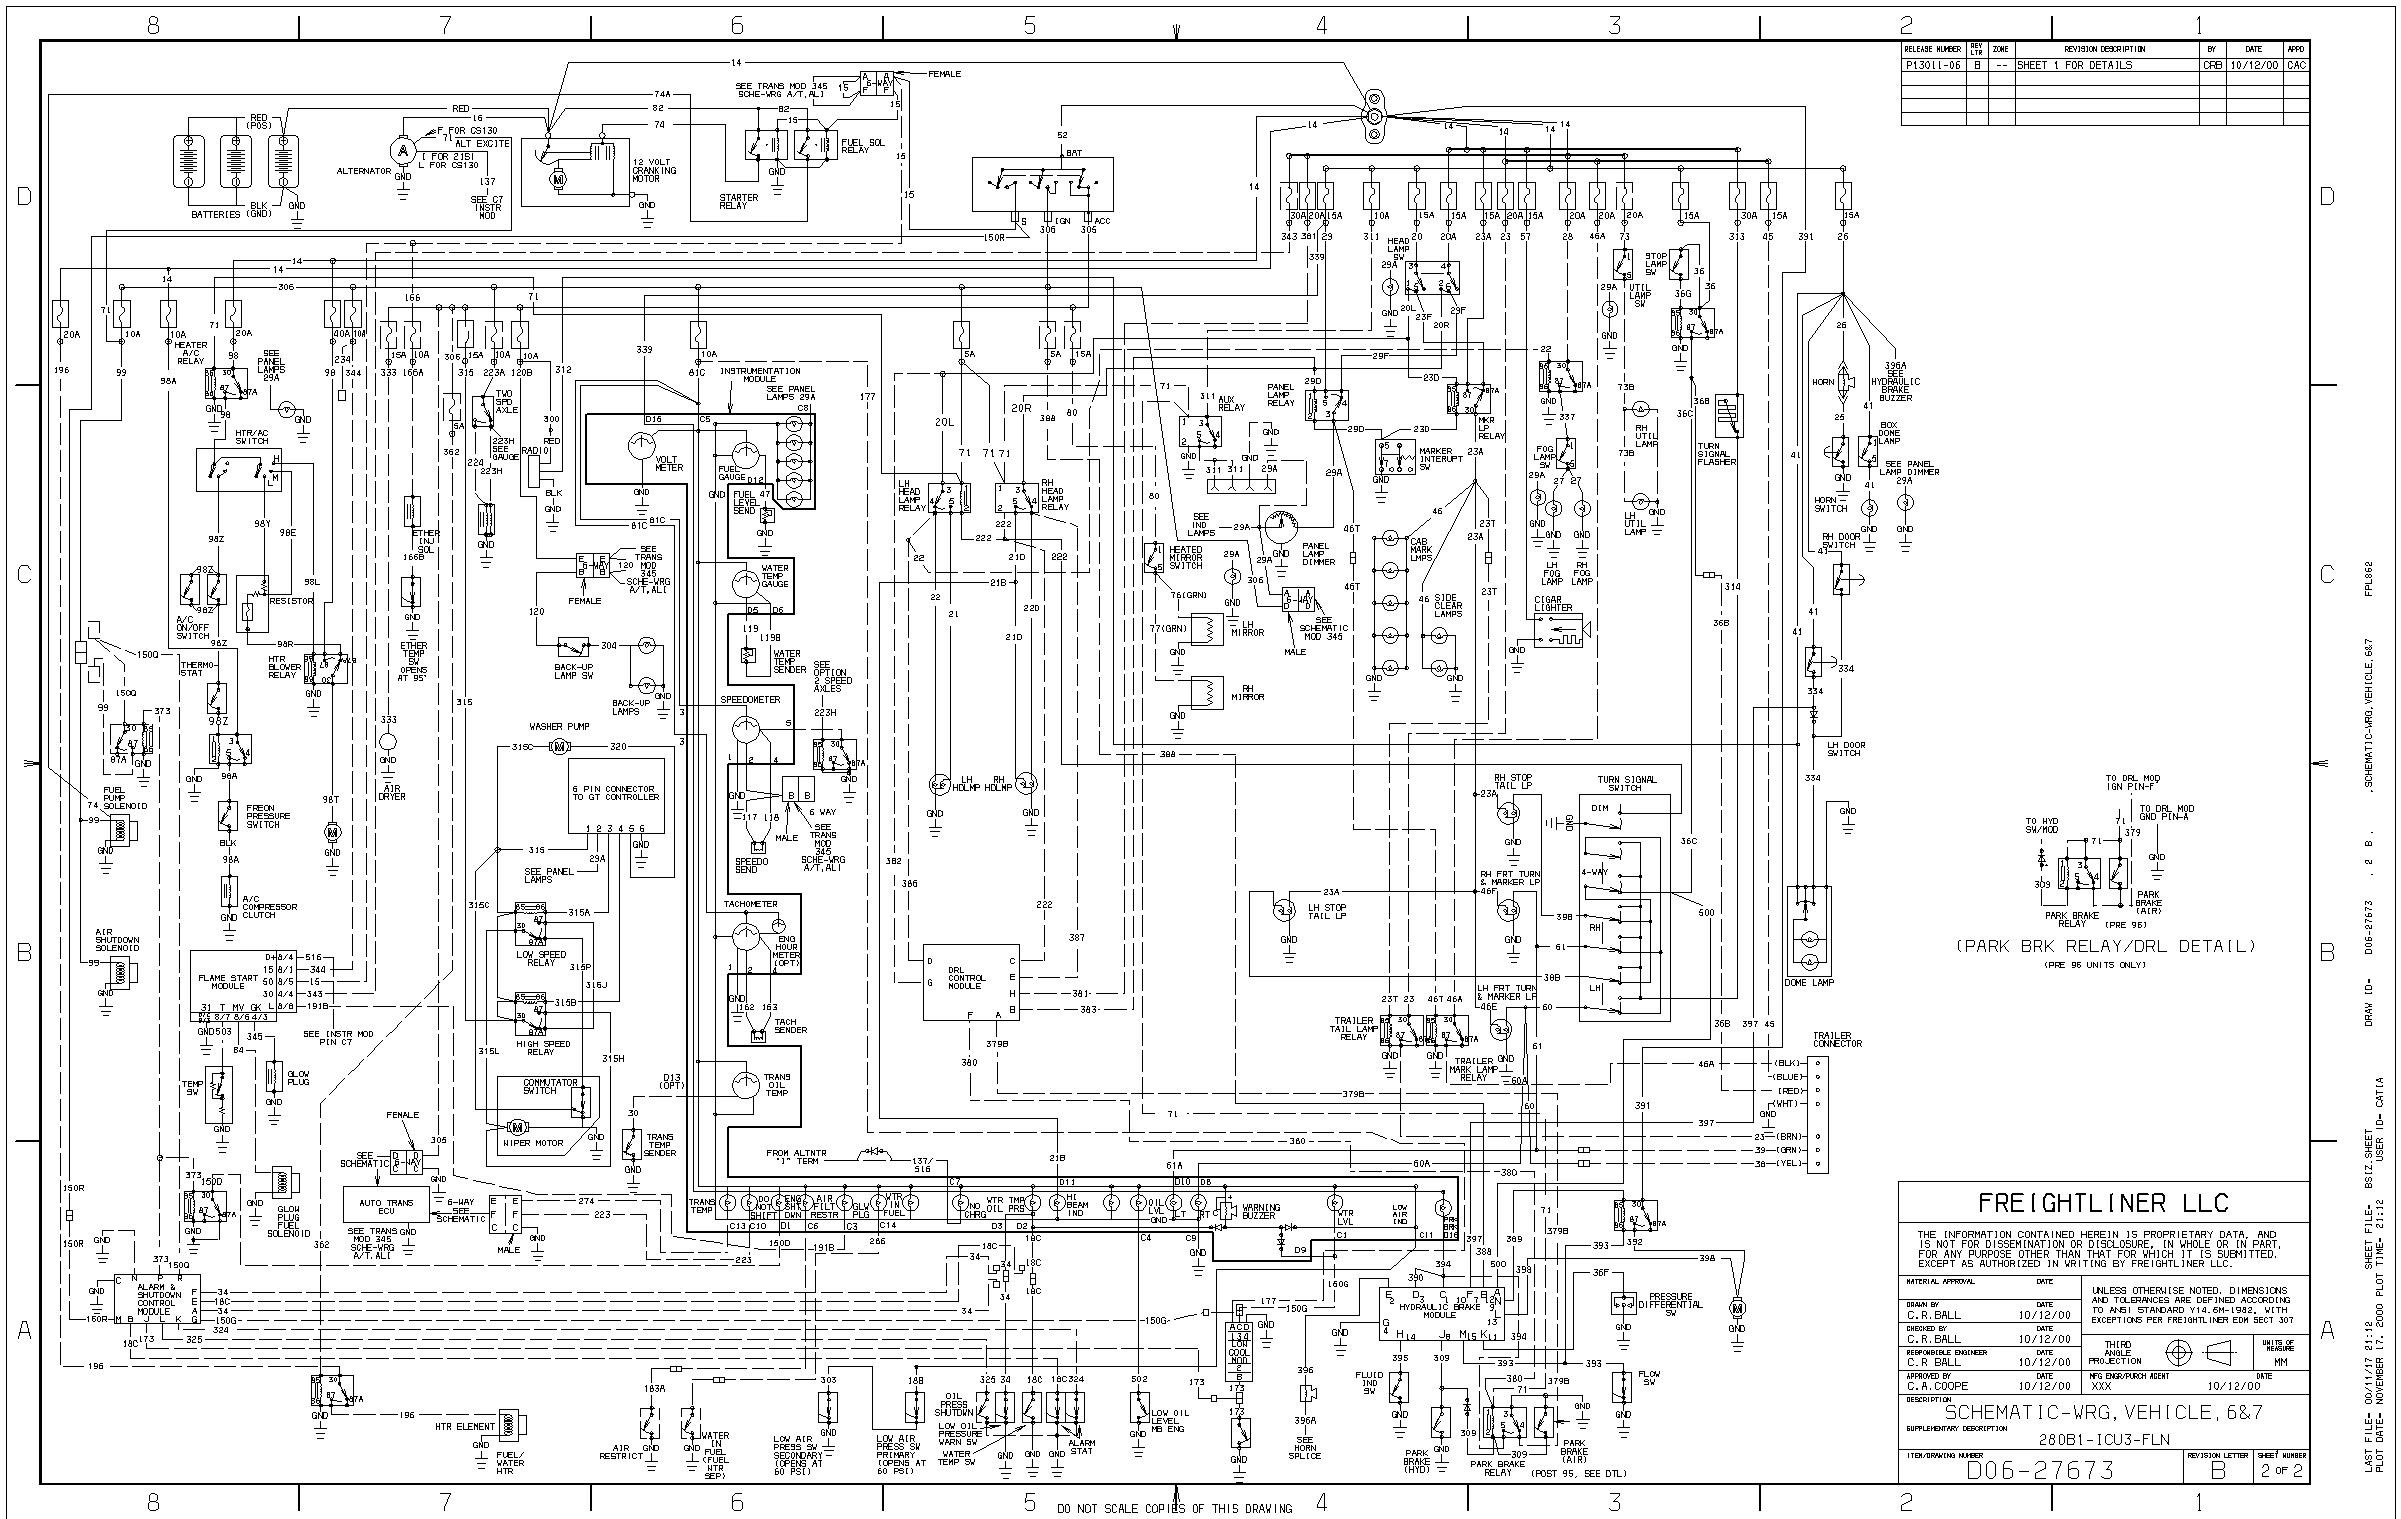 2008 Sterling Truck Diagram Trusted Wiring Diagram Sterling Blower Motor Wiring  Diagram 2002 2002 Sterling Wiring Diagram